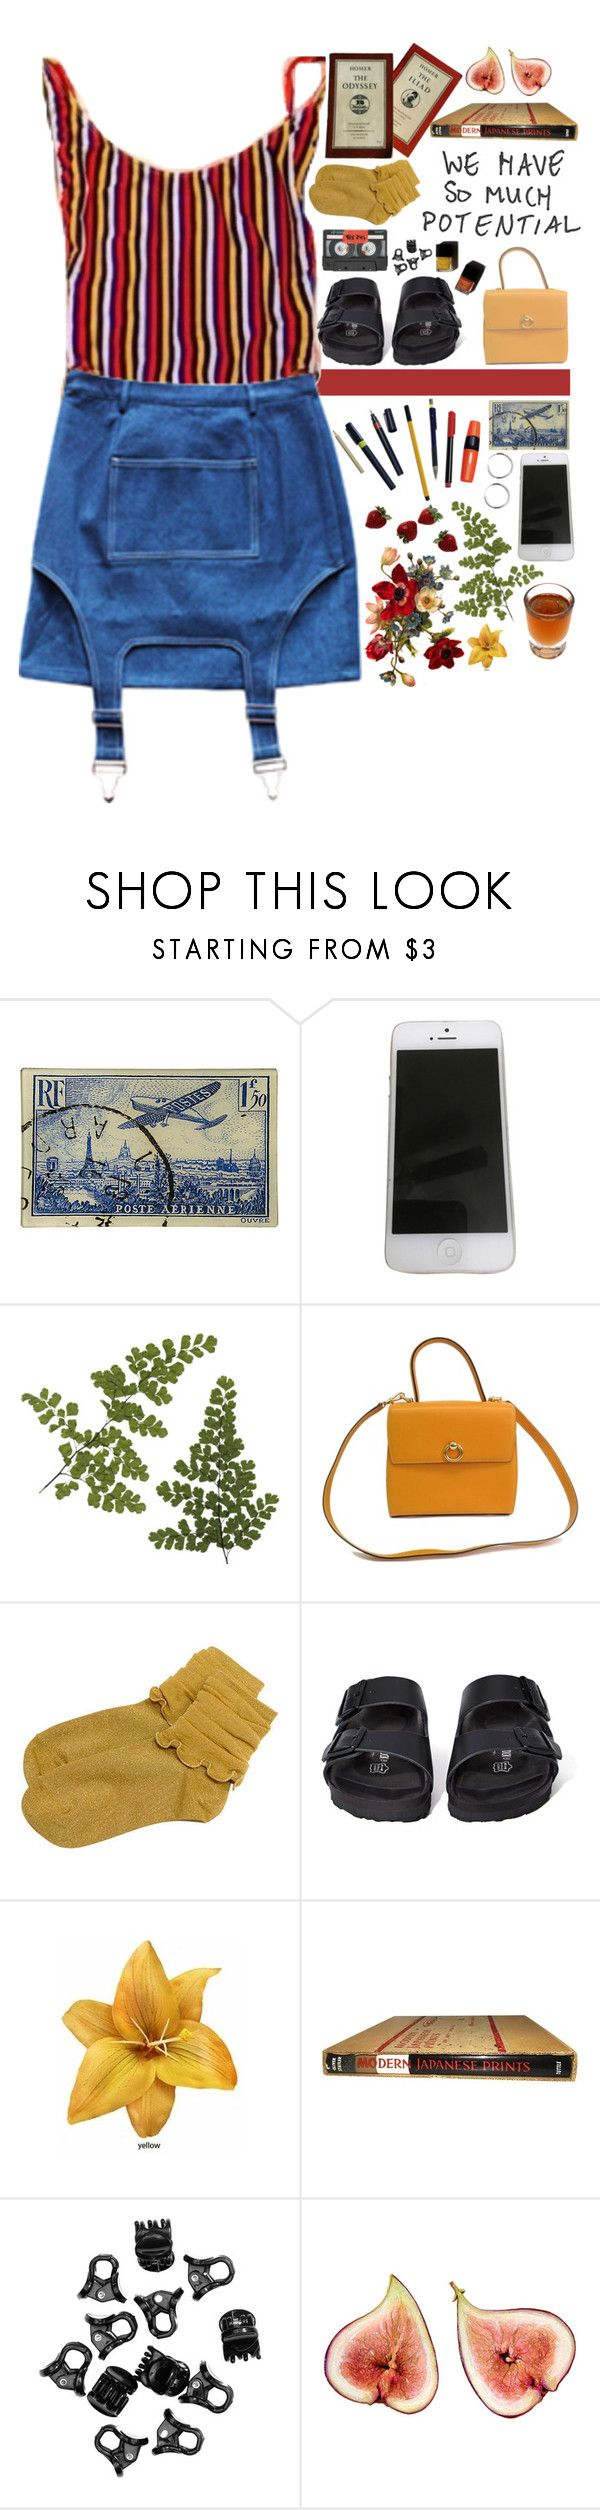 """""""#13 // Predictable"""" by needyavocado ❤ liked on Polyvore featuring Margarin Fingers, Soicher Marin, Apple, CÉLINE, Birkenstock, Garance Doré and H&M"""